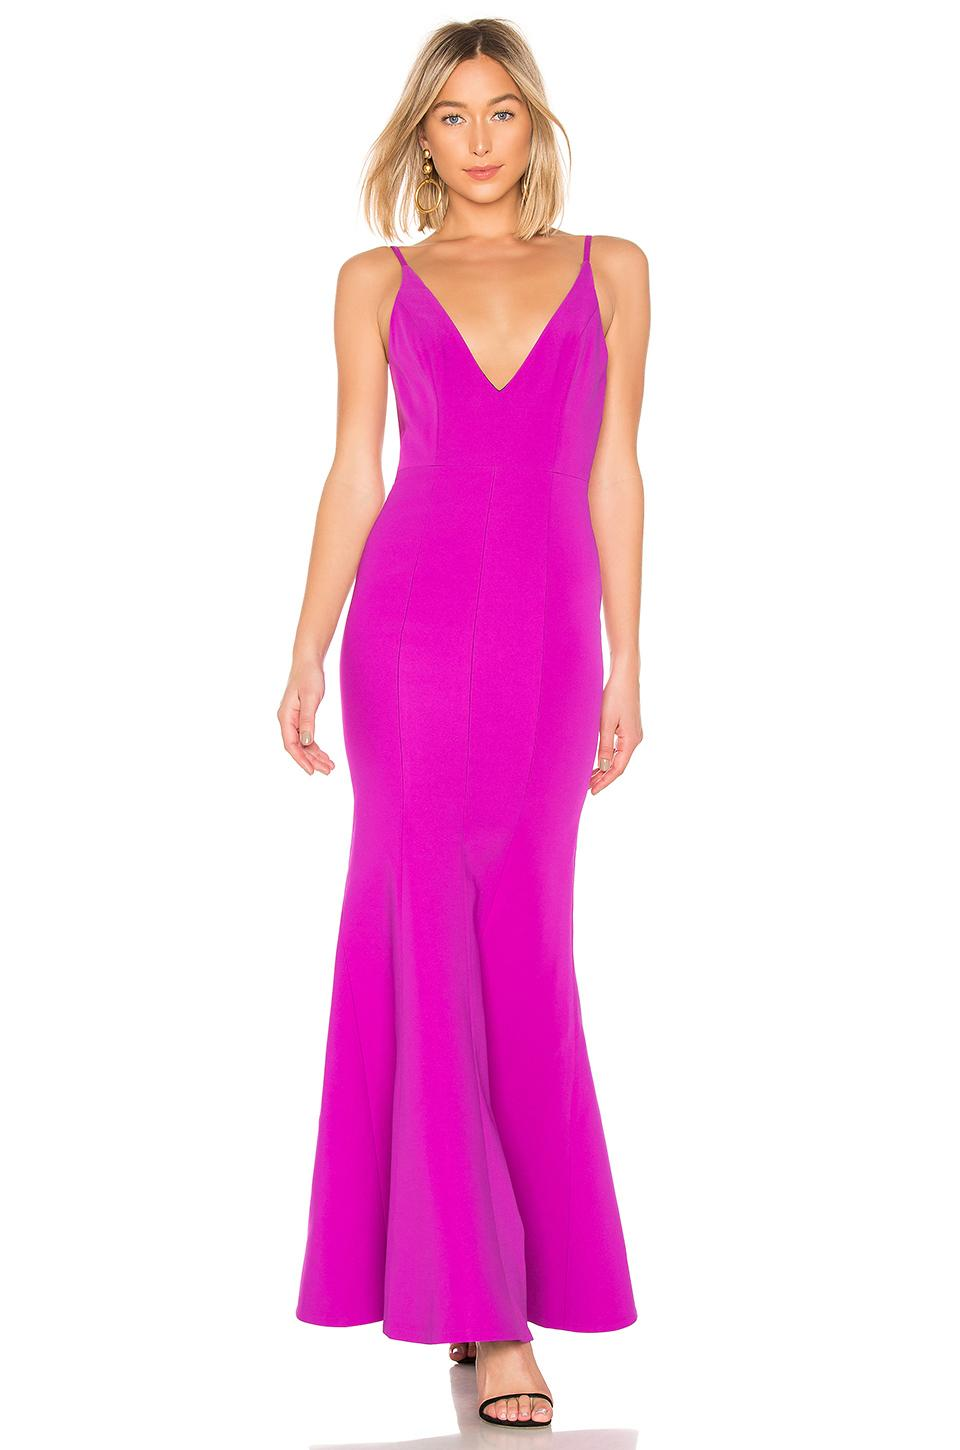 e1fb543aee8d2 Lyst - Aijek Camille Bonded Scoop Back Gown in Purple